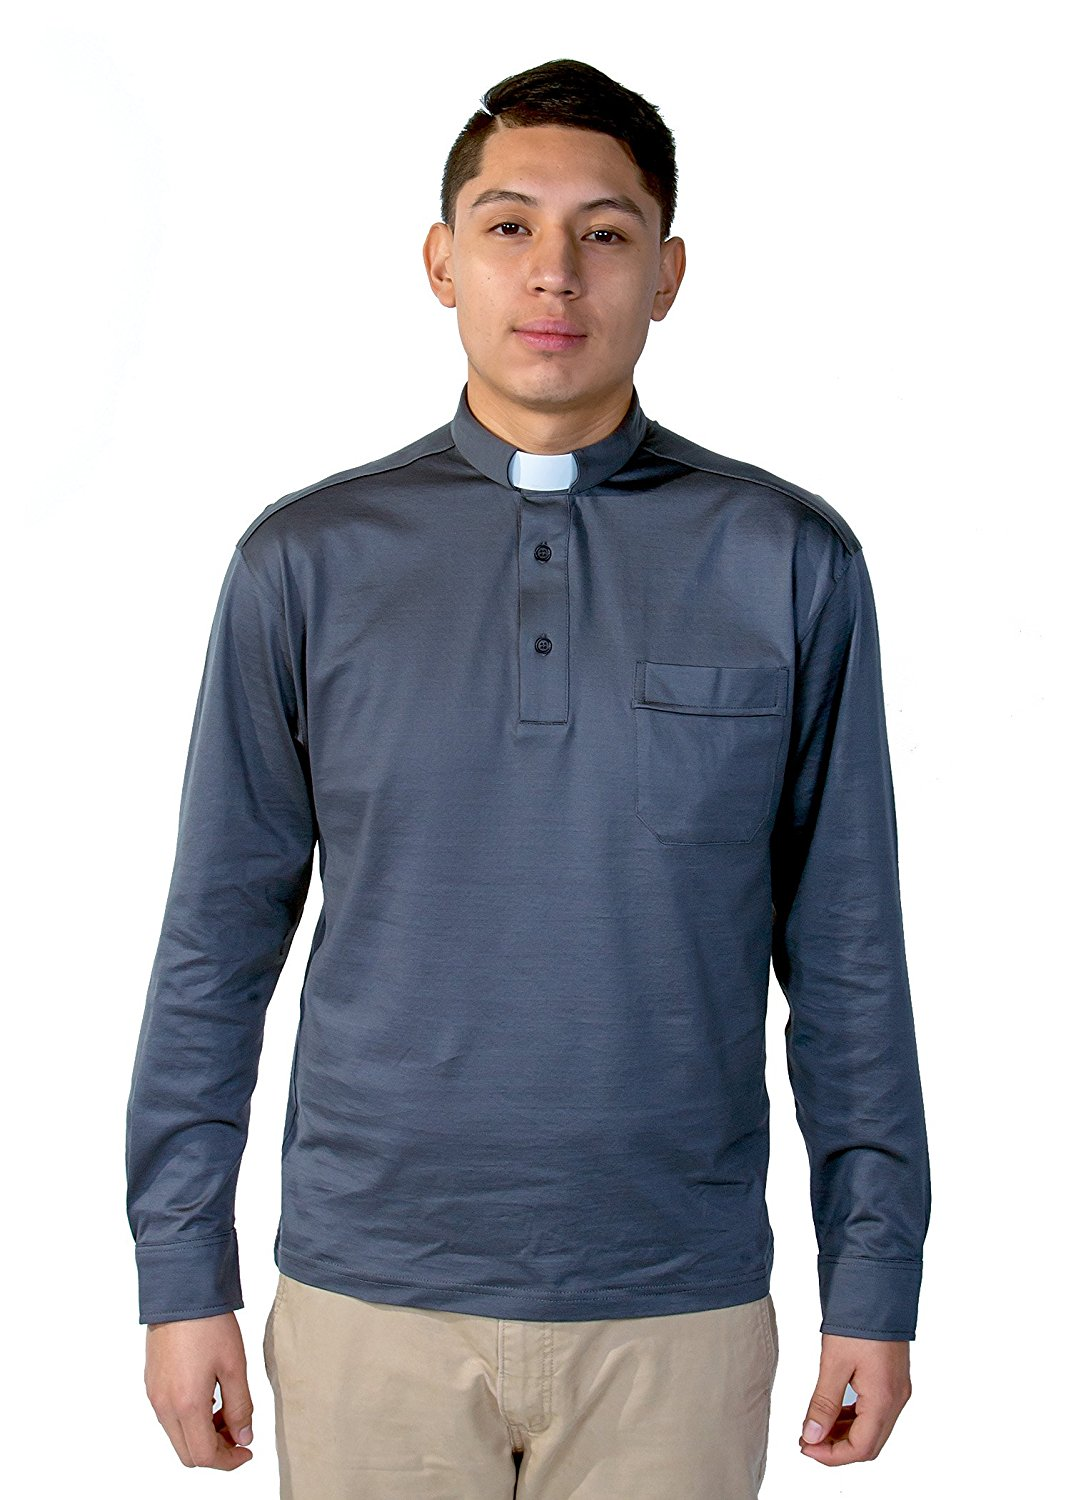 f1ea1c8501 Get Quotations · Mercy Robes Mens Cotton Clergy Polo Long Sleeve Tab Shirt  (Grey)